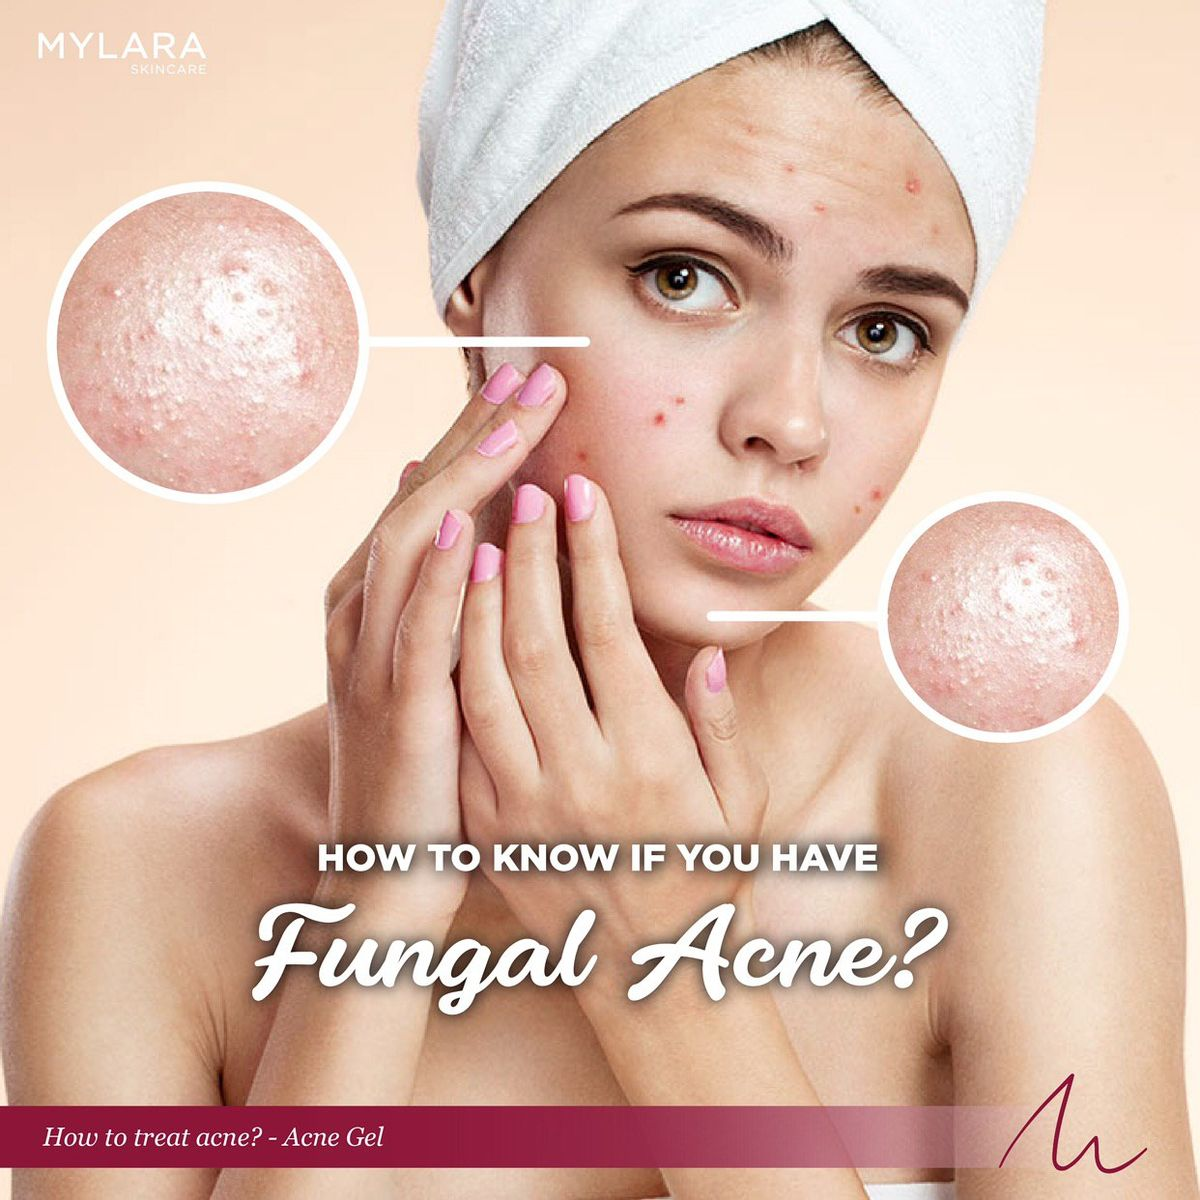 HOW TO KNOW IF YOU HAVE FUNGAL ACNE